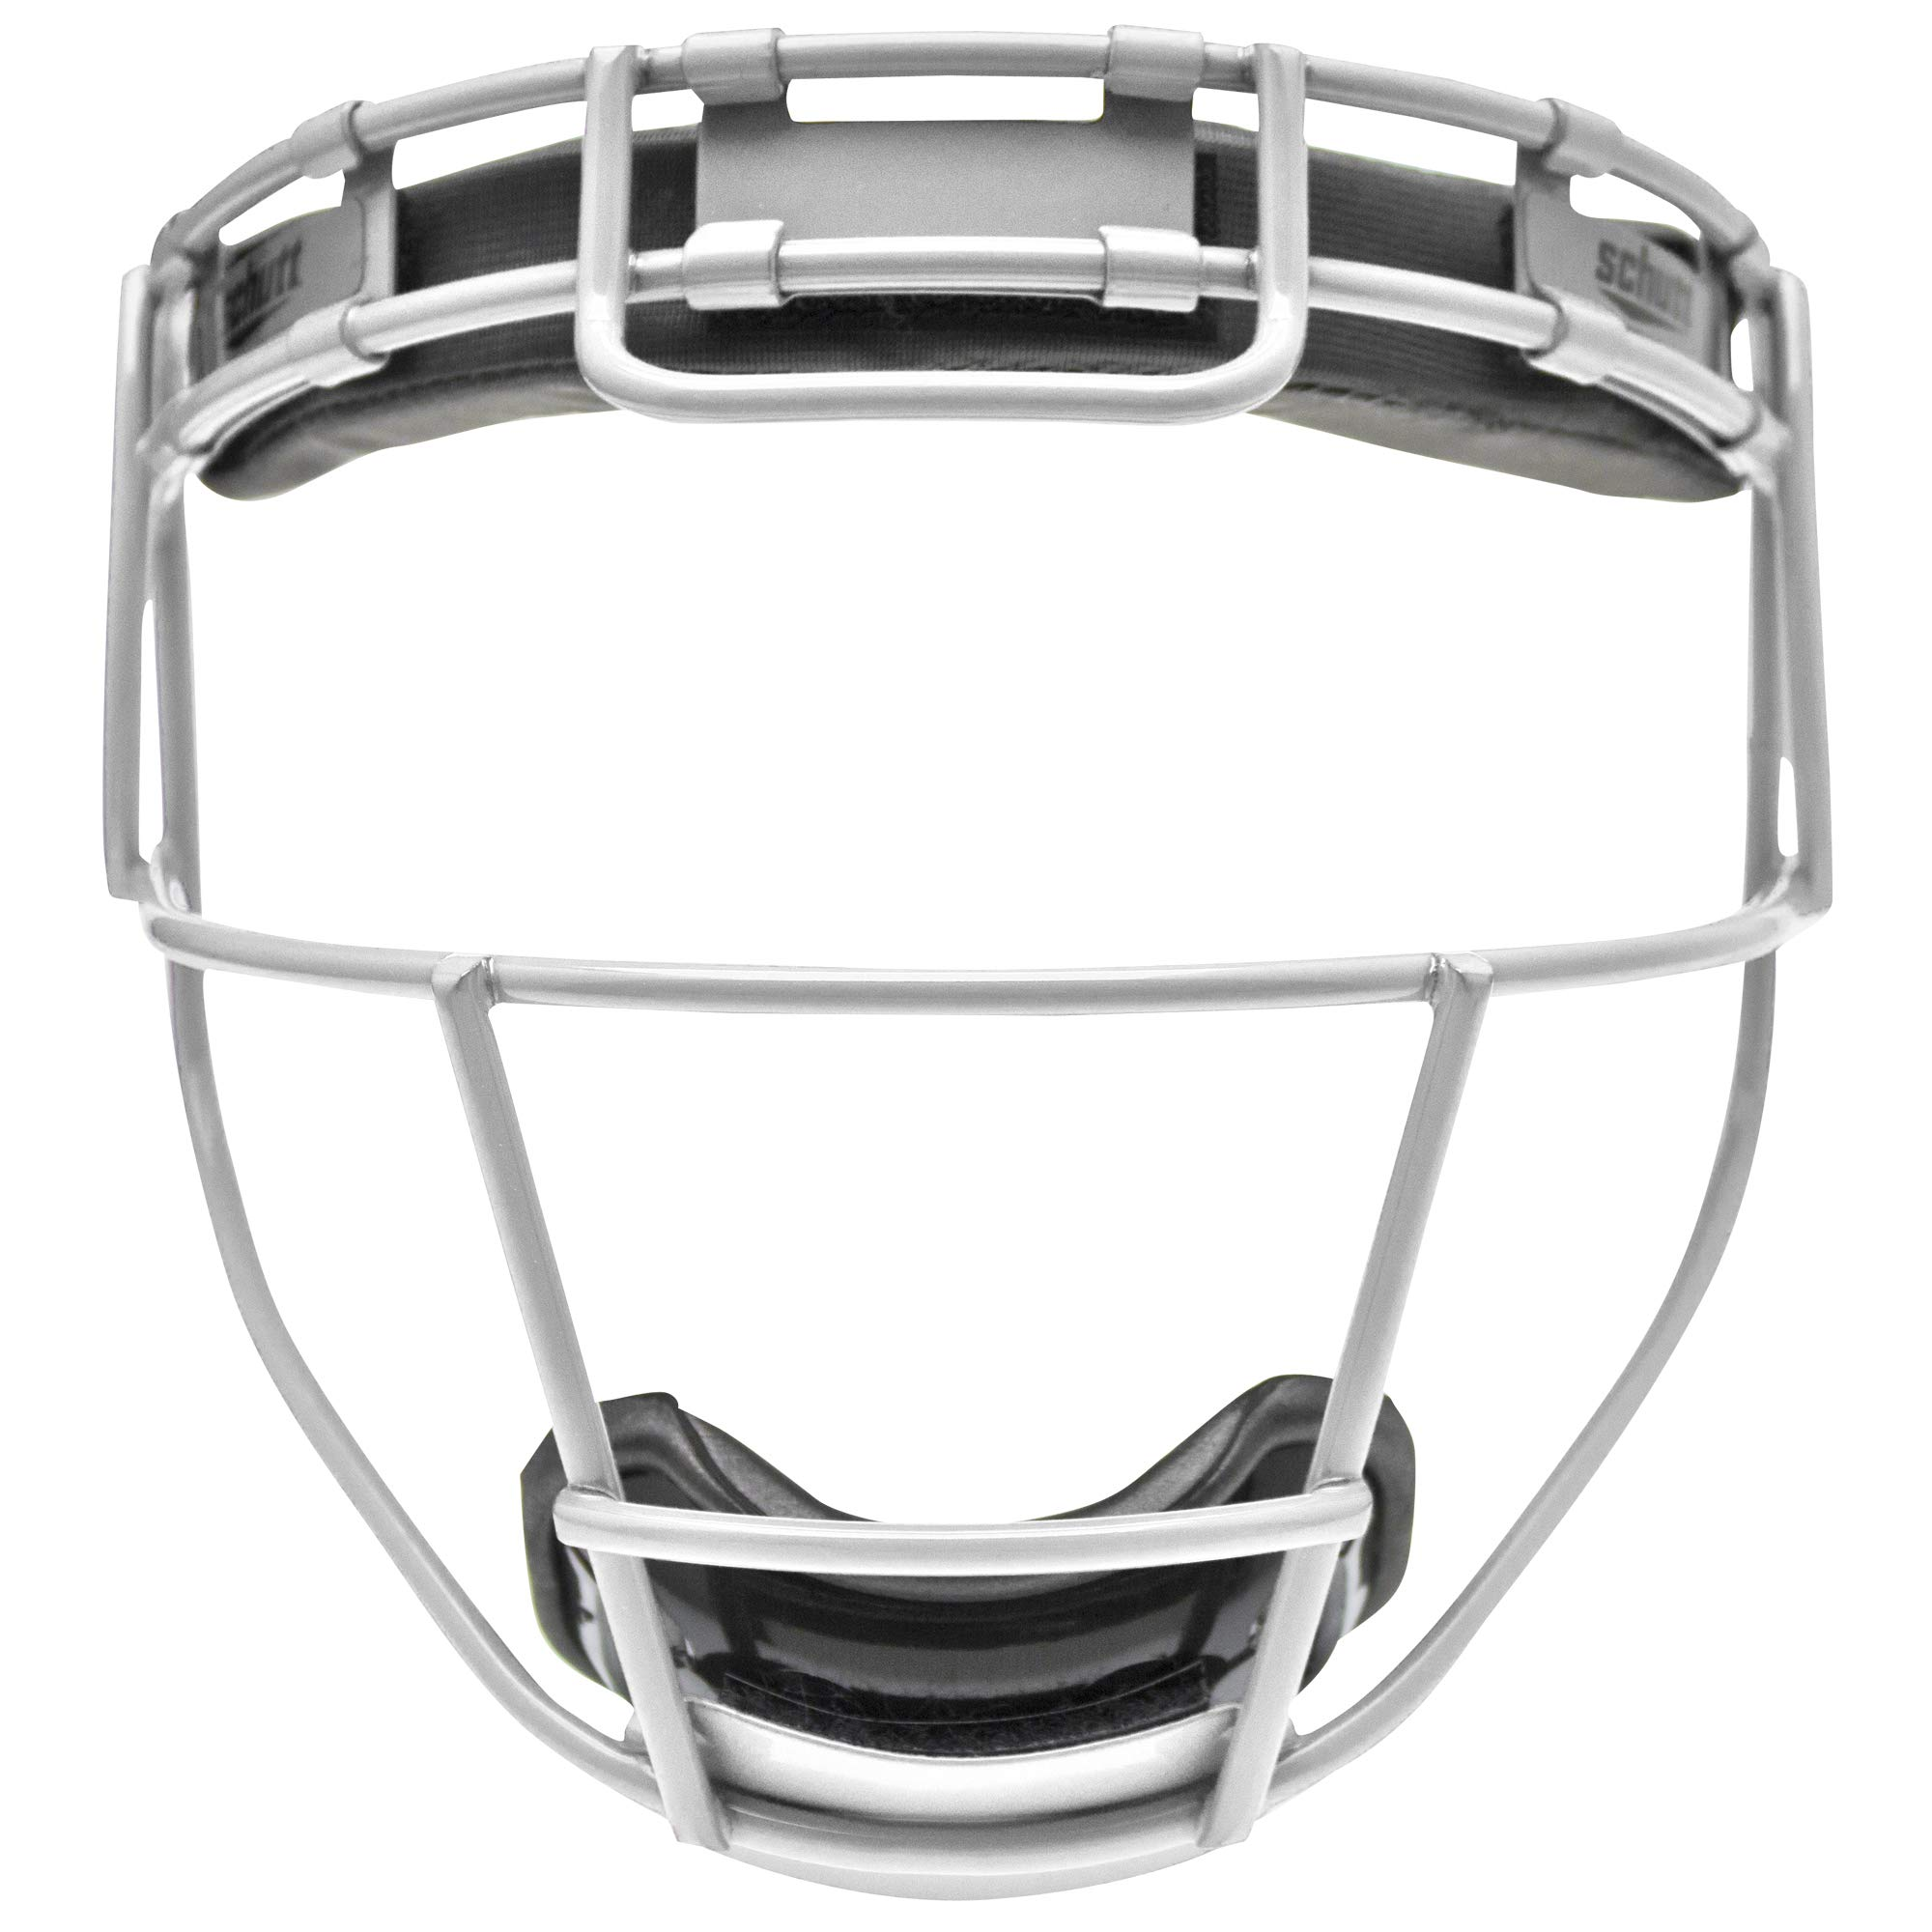 Schutt Sports Softball Fielders Guard, Adult, Metallic Silver by Schutt